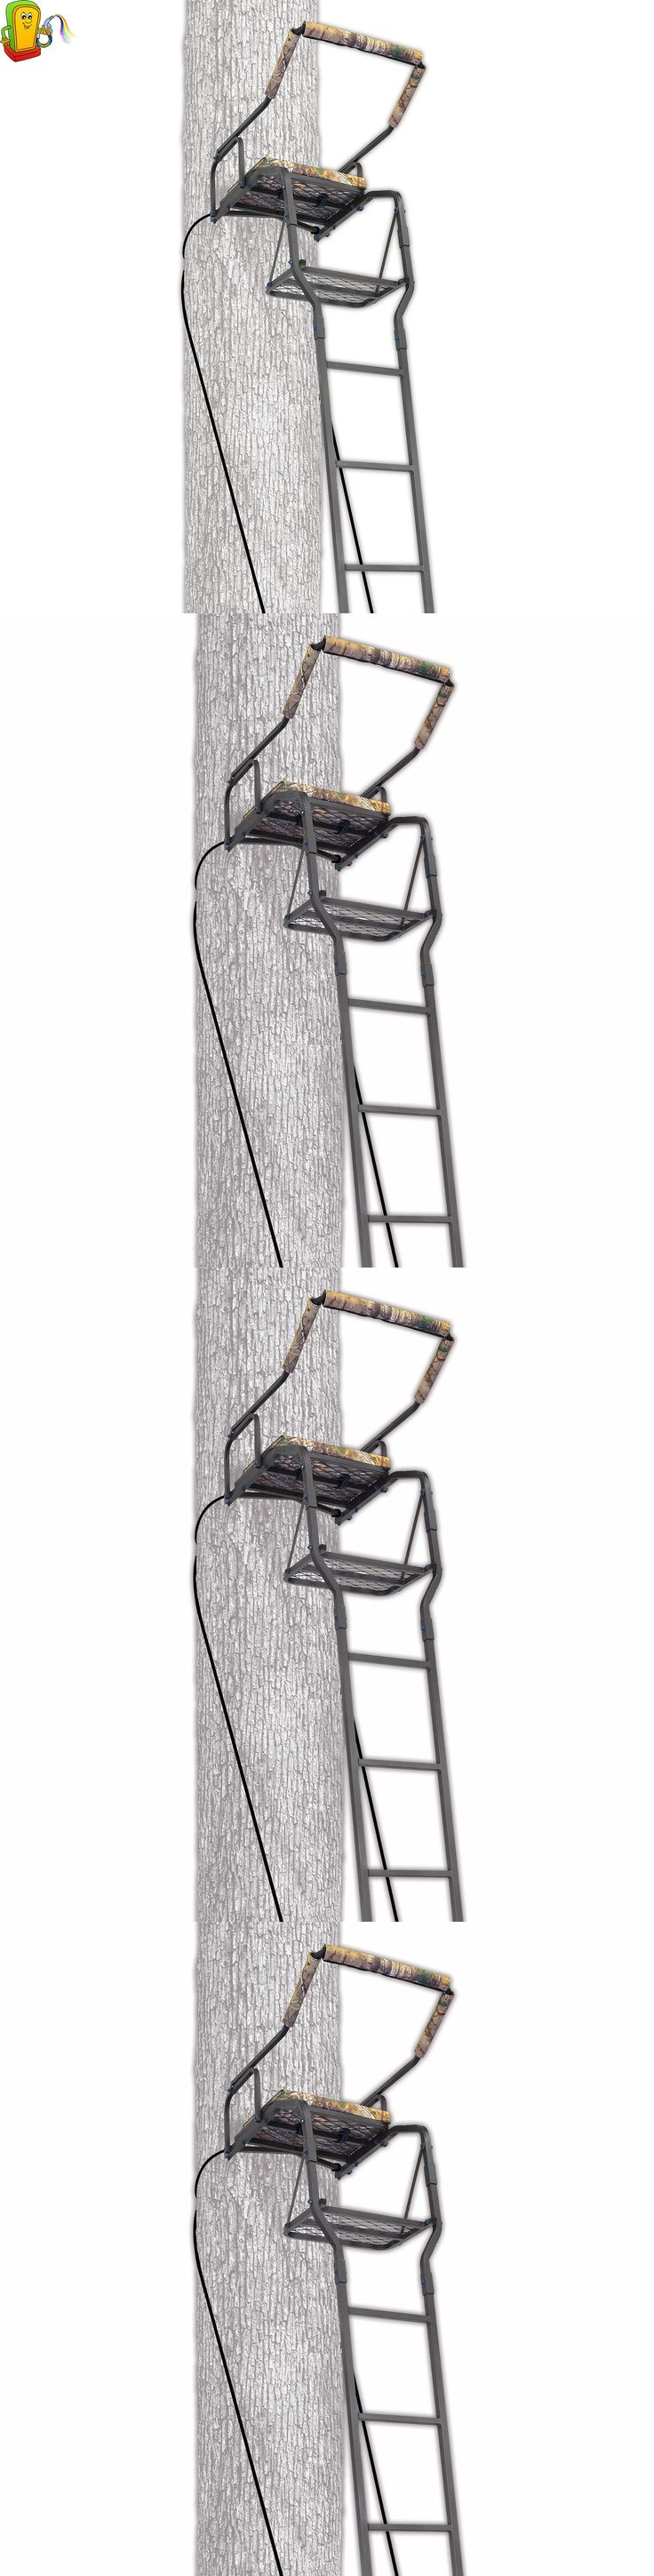 Tree Stands 52508: Deer Hunting Ladder Rifle Tree Stand Sniper Bow Treestand Man Climbing New -> BUY IT NOW ONLY: $98.7 on eBay!